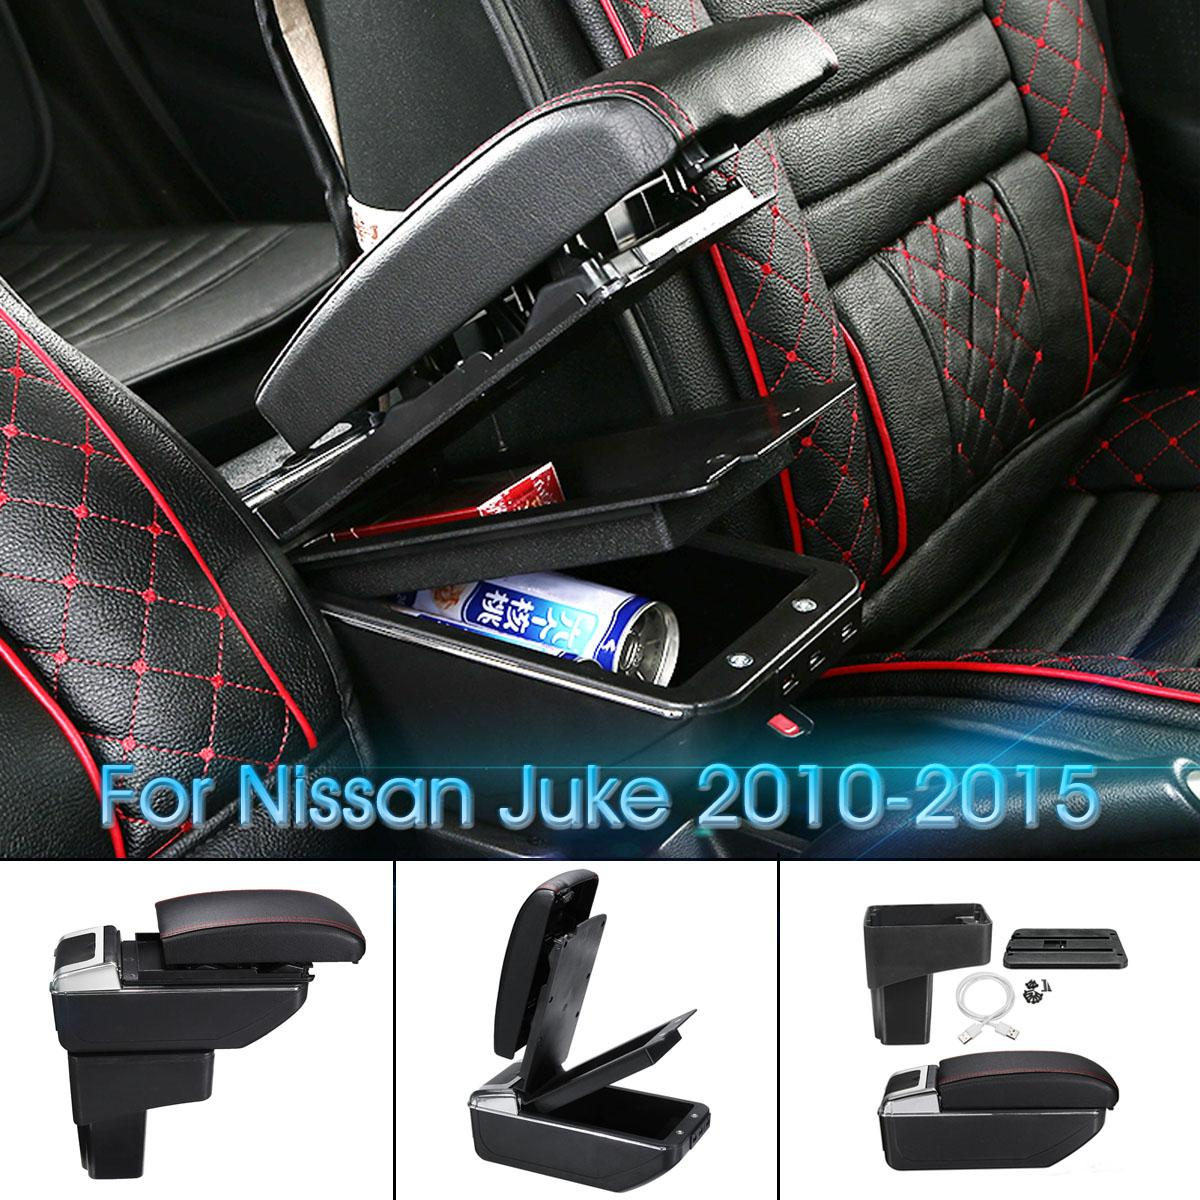 Car Armrest Box Leather Central Store Content Box Black Cup Holder For Nissan Juke 2010-2015 Car AccessoriesCar Armrest Box Leather Central Store Content Box Black Cup Holder For Nissan Juke 2010-2015 Car Accessories